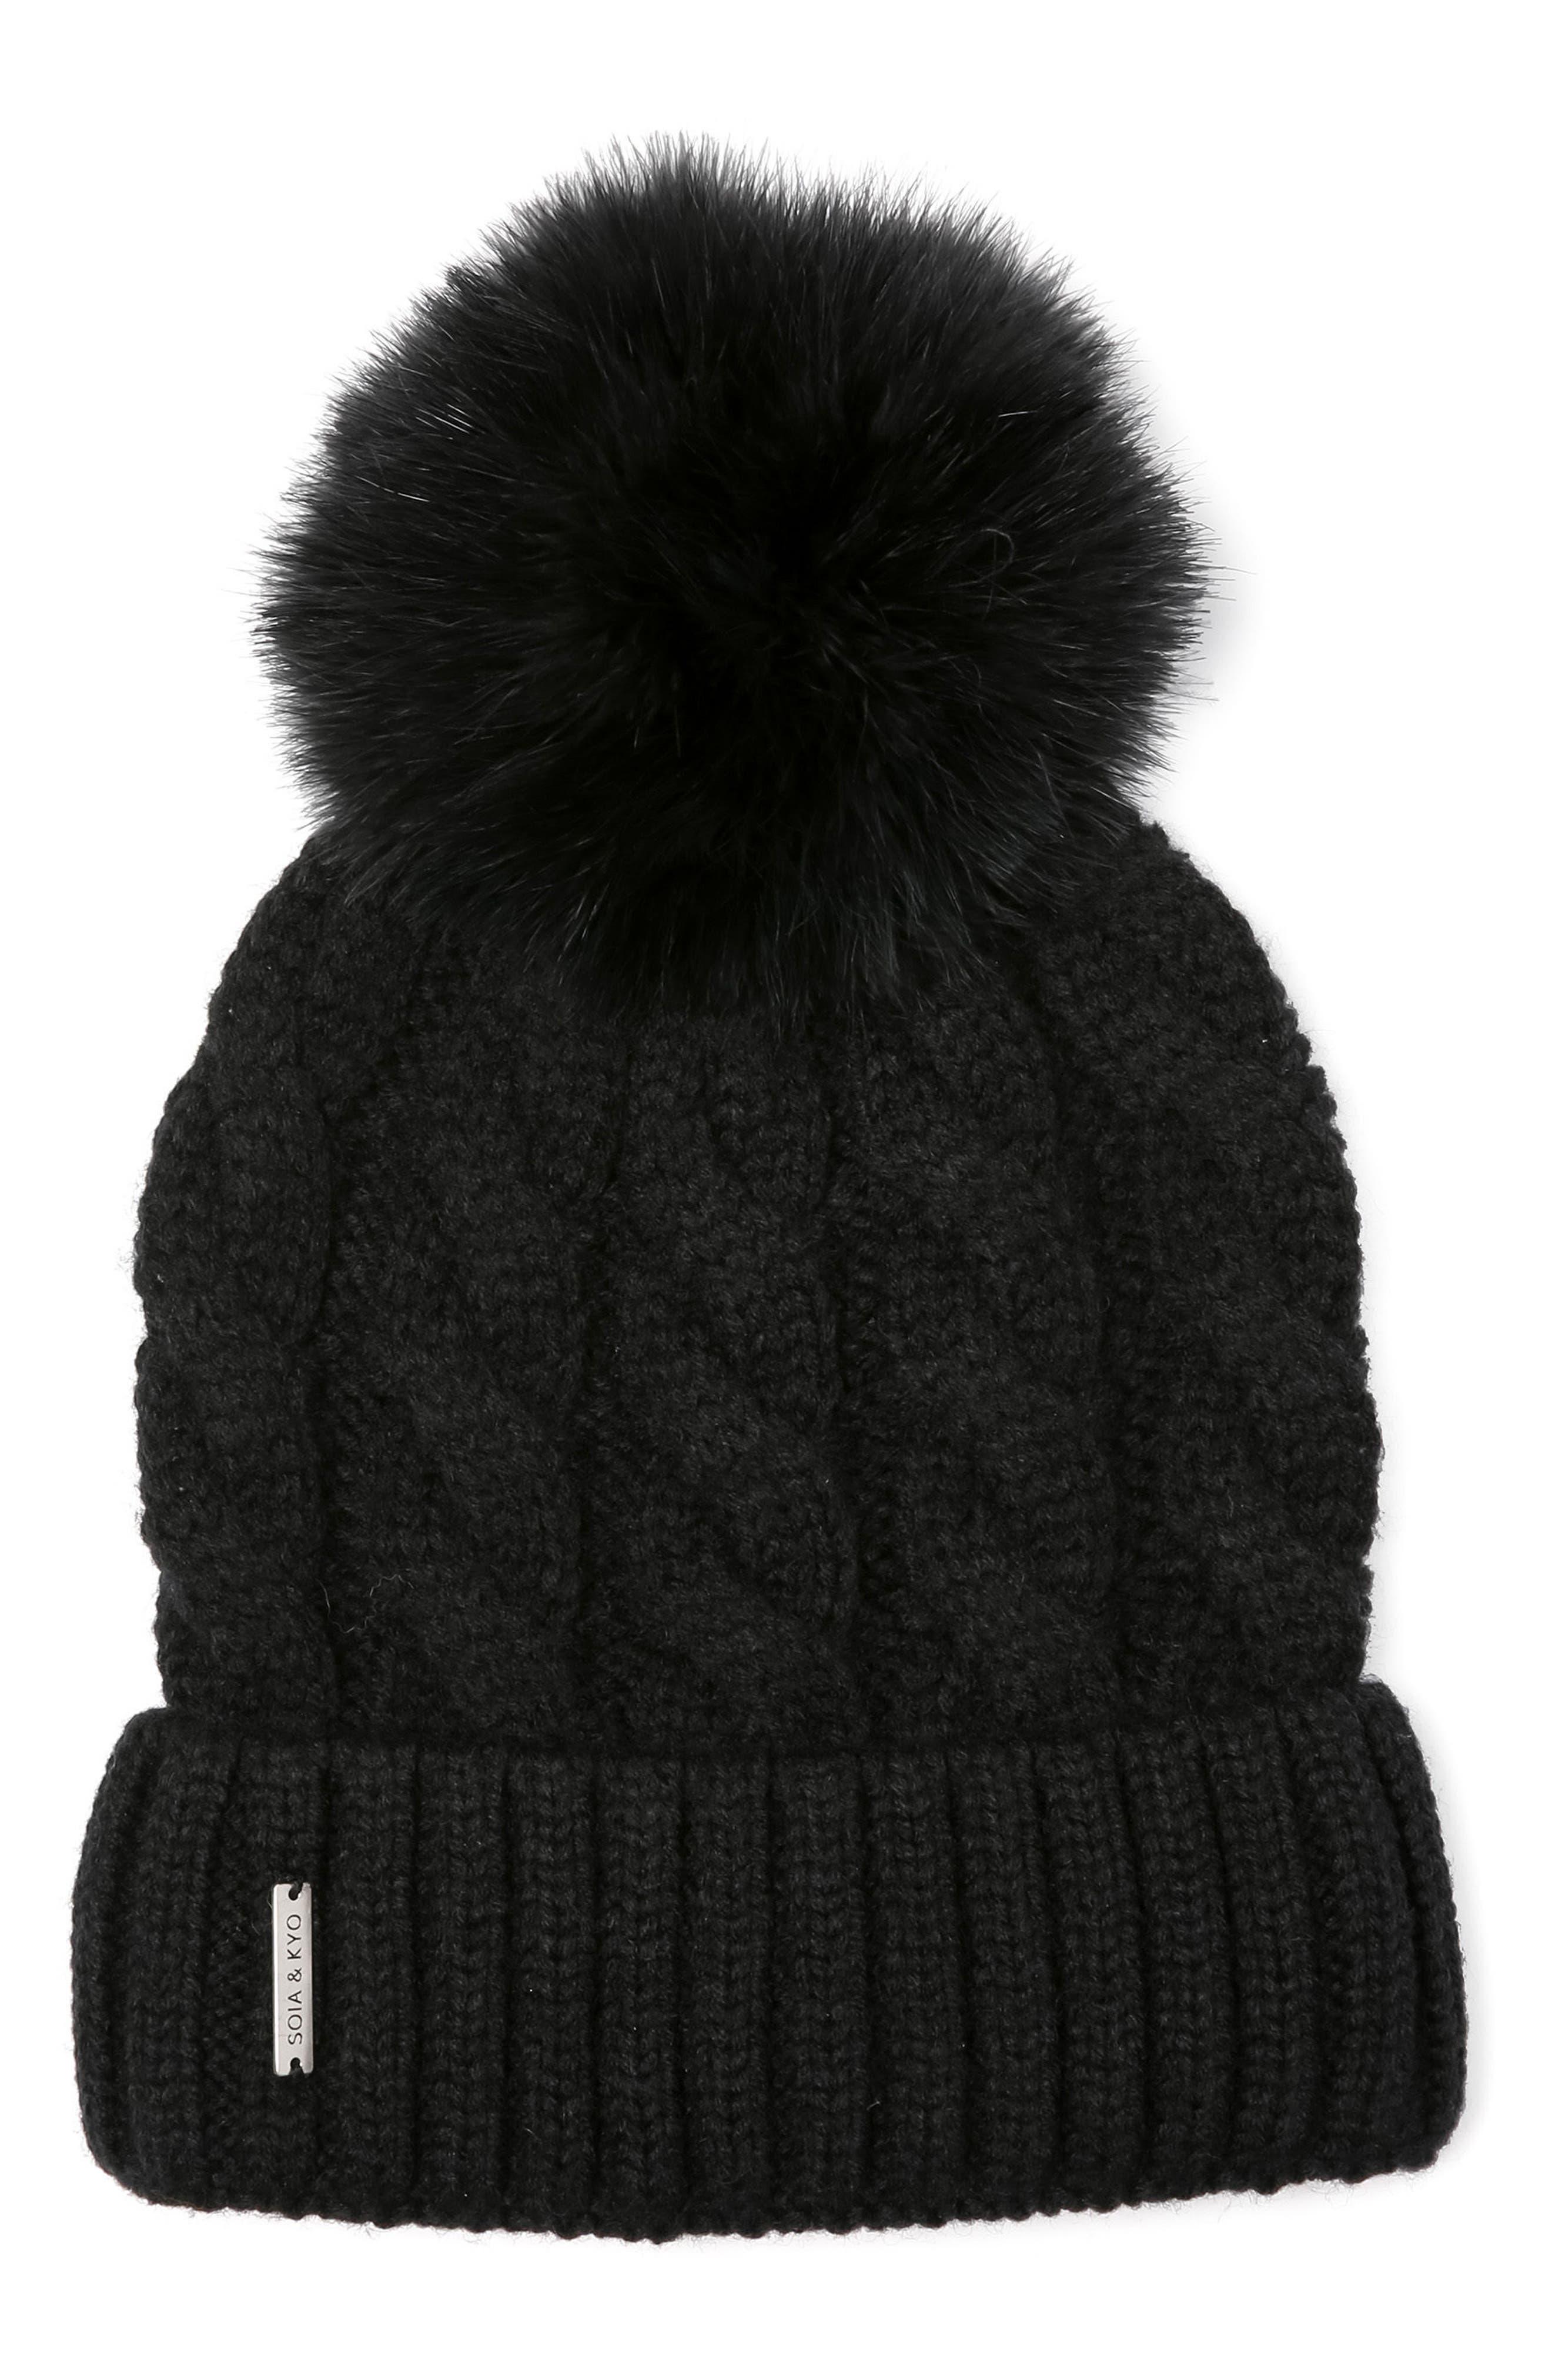 Cable Knit Beanie with Removable Feather Pompom,                             Main thumbnail 1, color,                             001